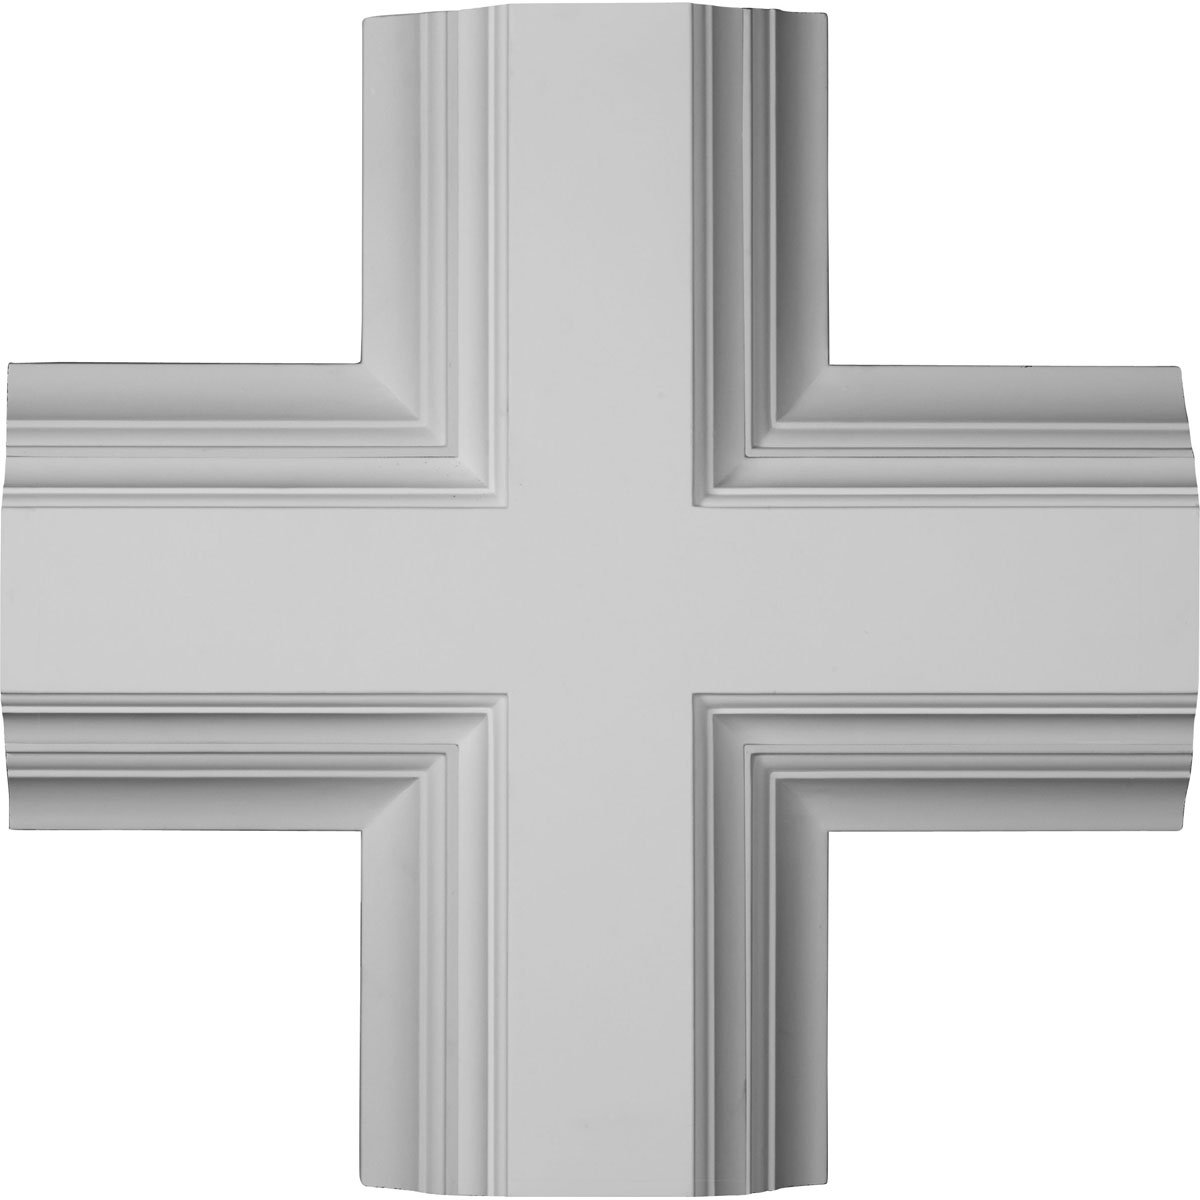 Ekena Millwork CC08ICI04X20X20DE 20''W x 4''P x 20''L Inner Cross Intersection for 8'' Deluxe Coffered Ceiling System (Kit)